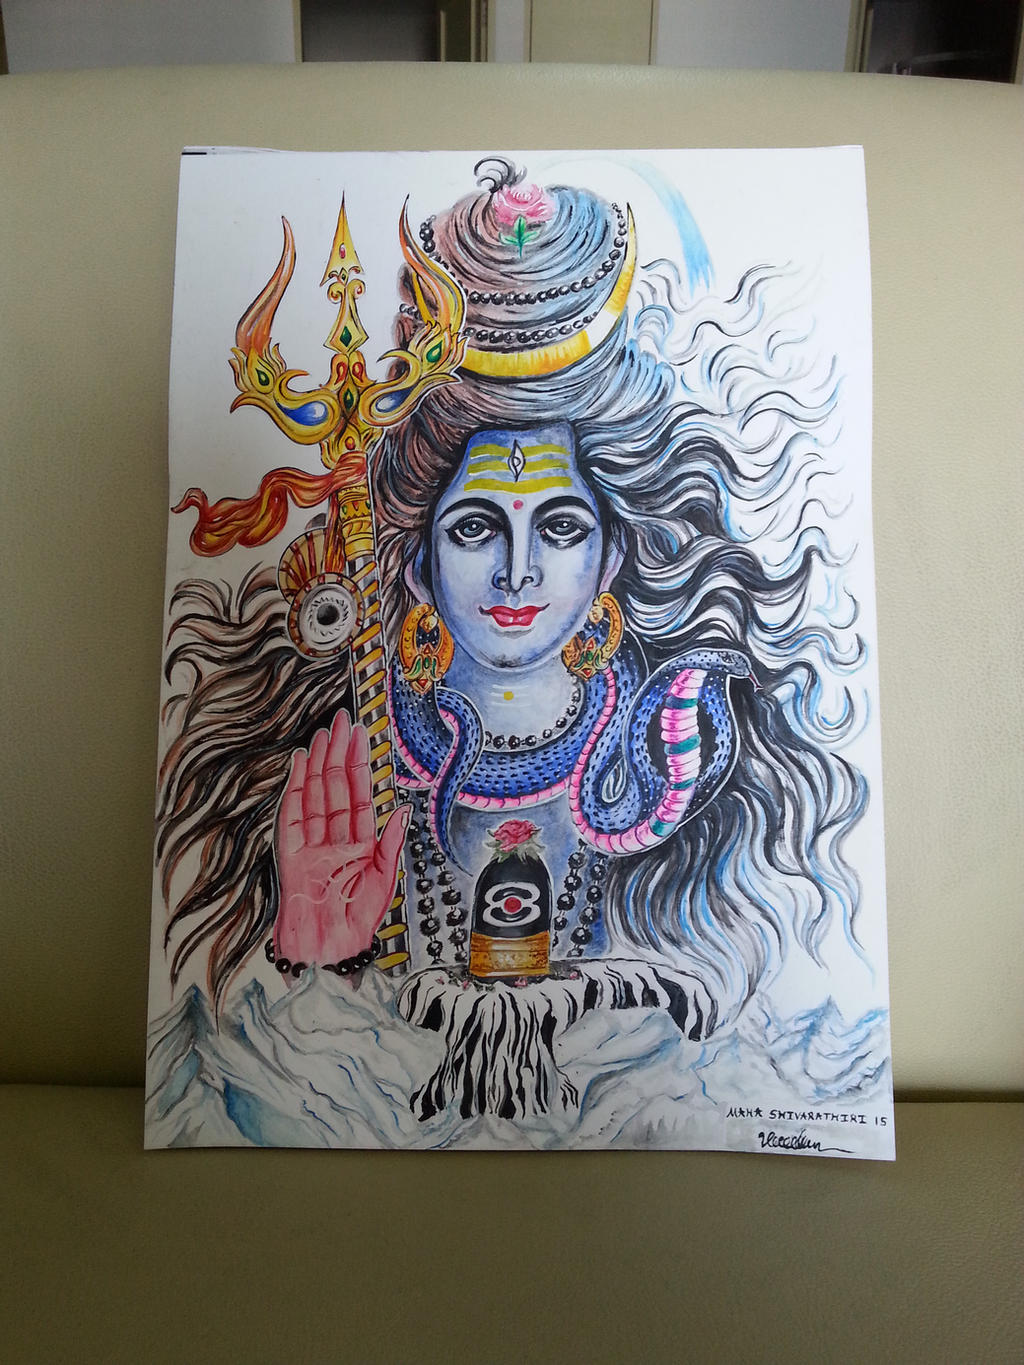 the girl dressed up by Lord Shiva by tehub on DeviantArt